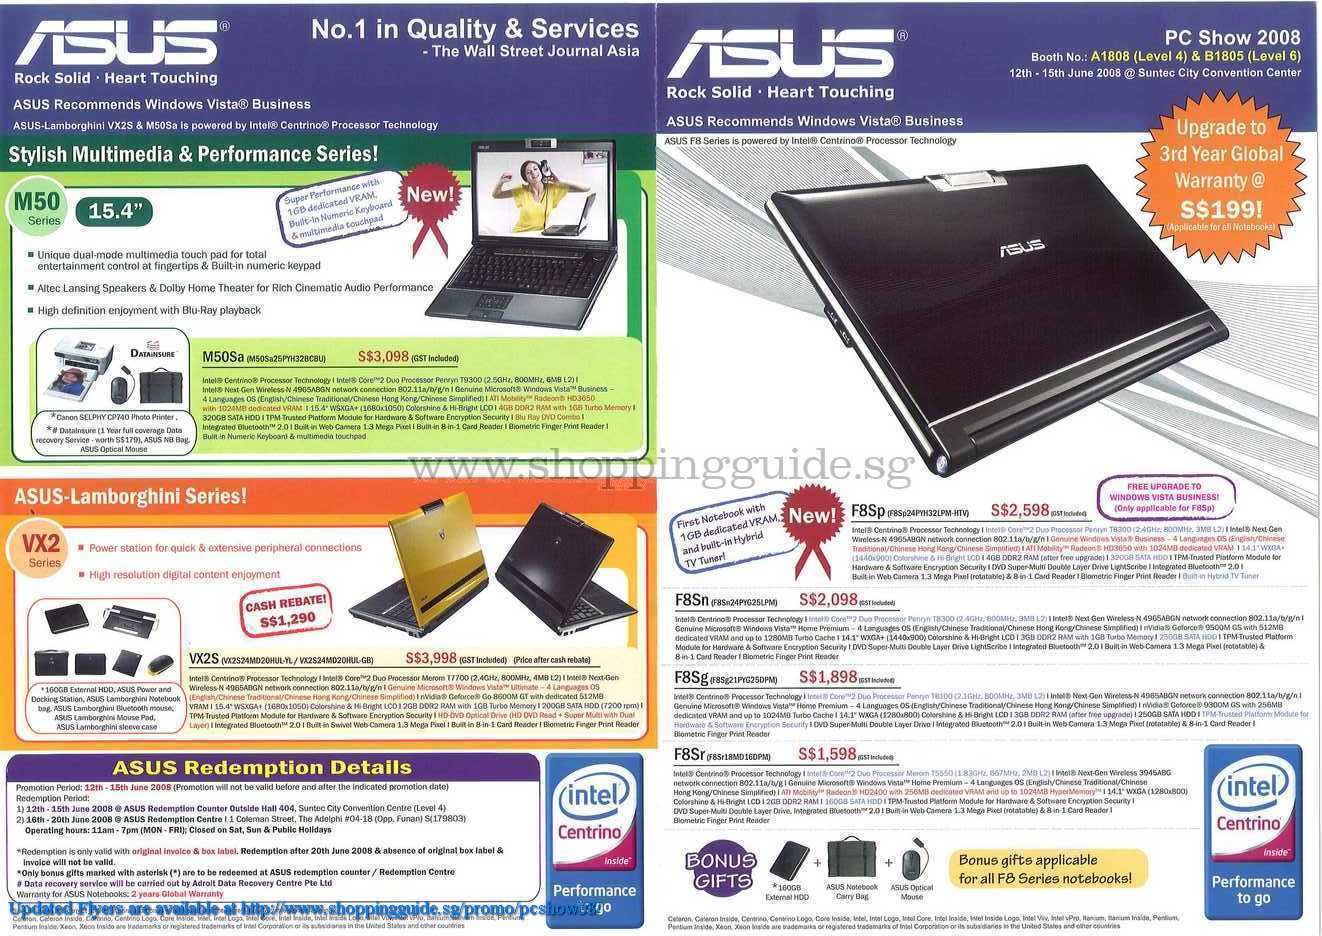 PC Show 2008 price list image brochure of Asus Notebooks ShoppingGuide.SG-PcShow08-087